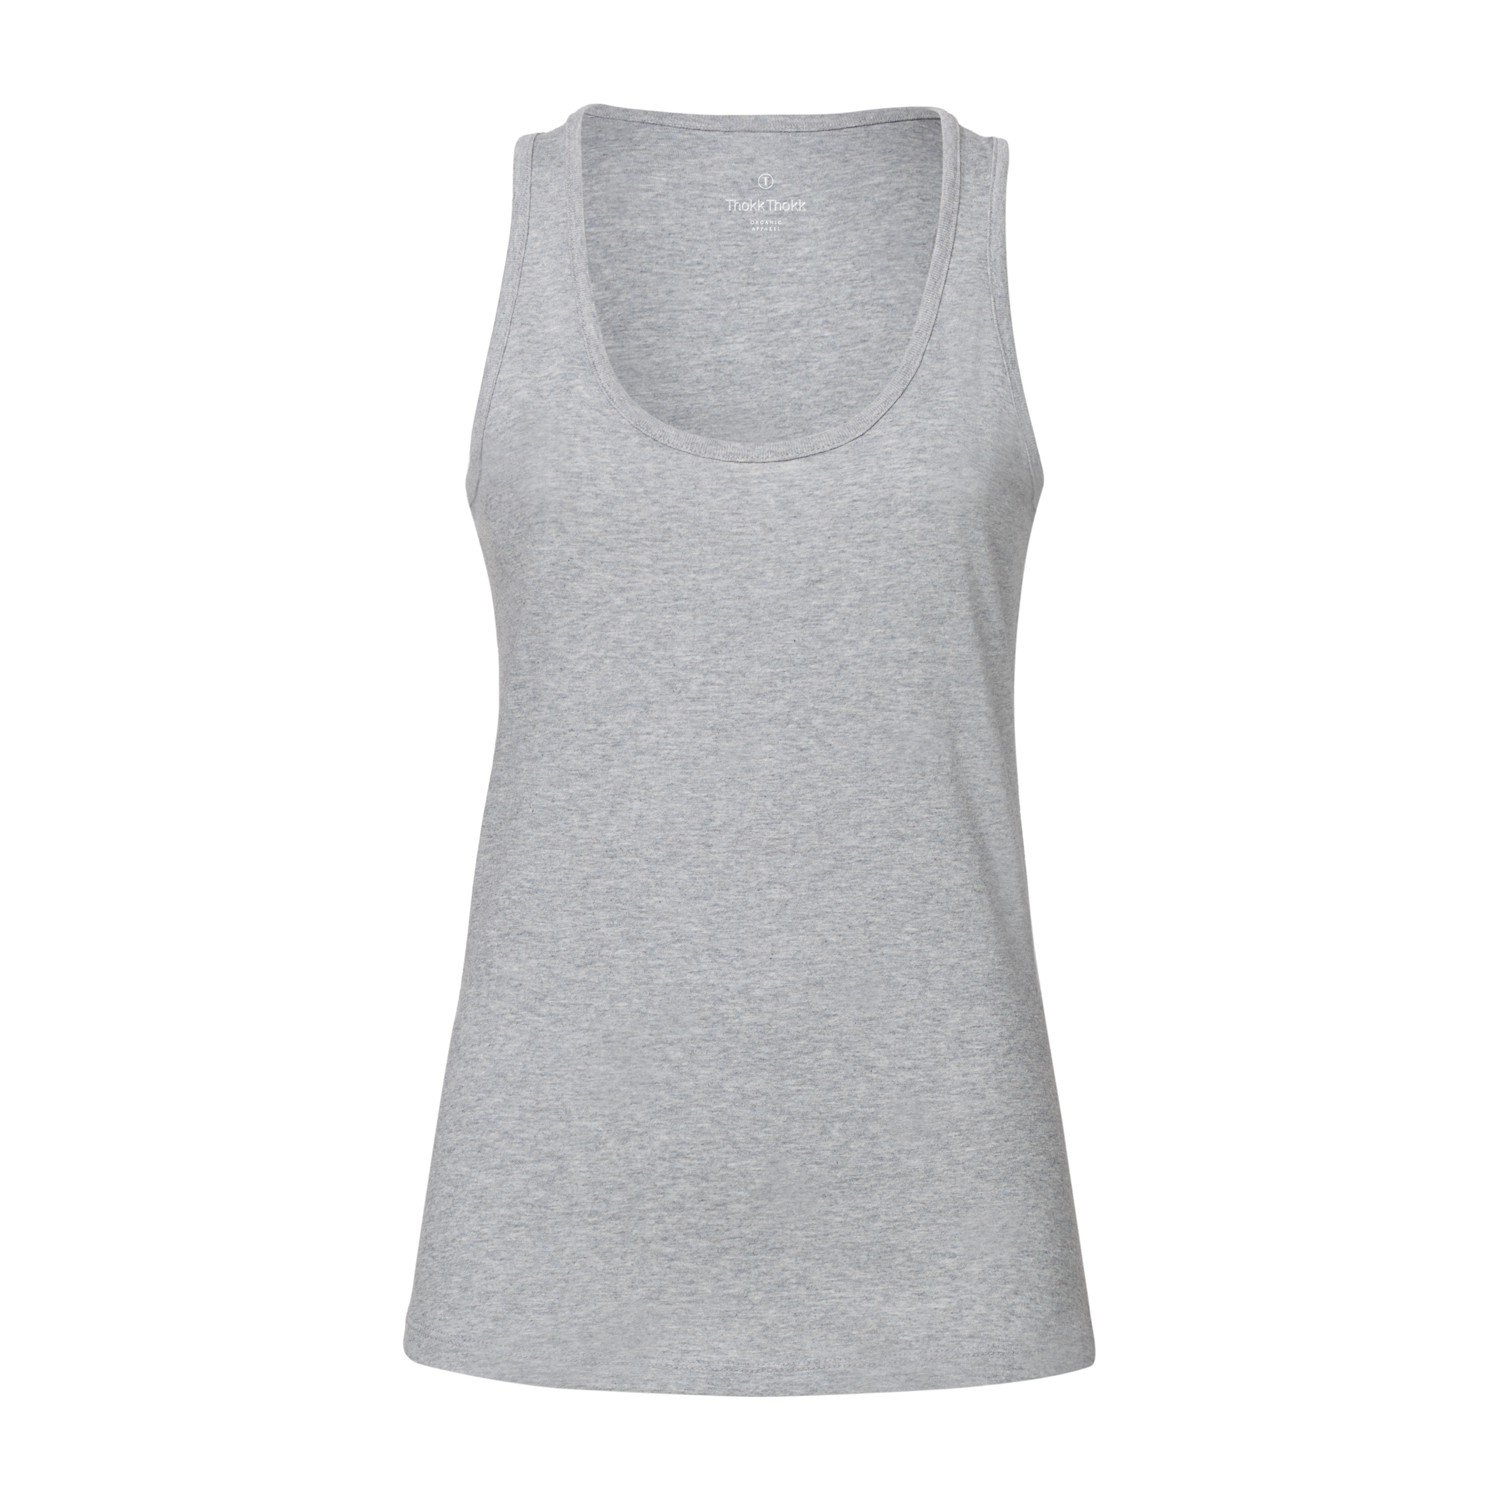 ThokkThokk Damen Tank Top Heather Grey Bio & Fair